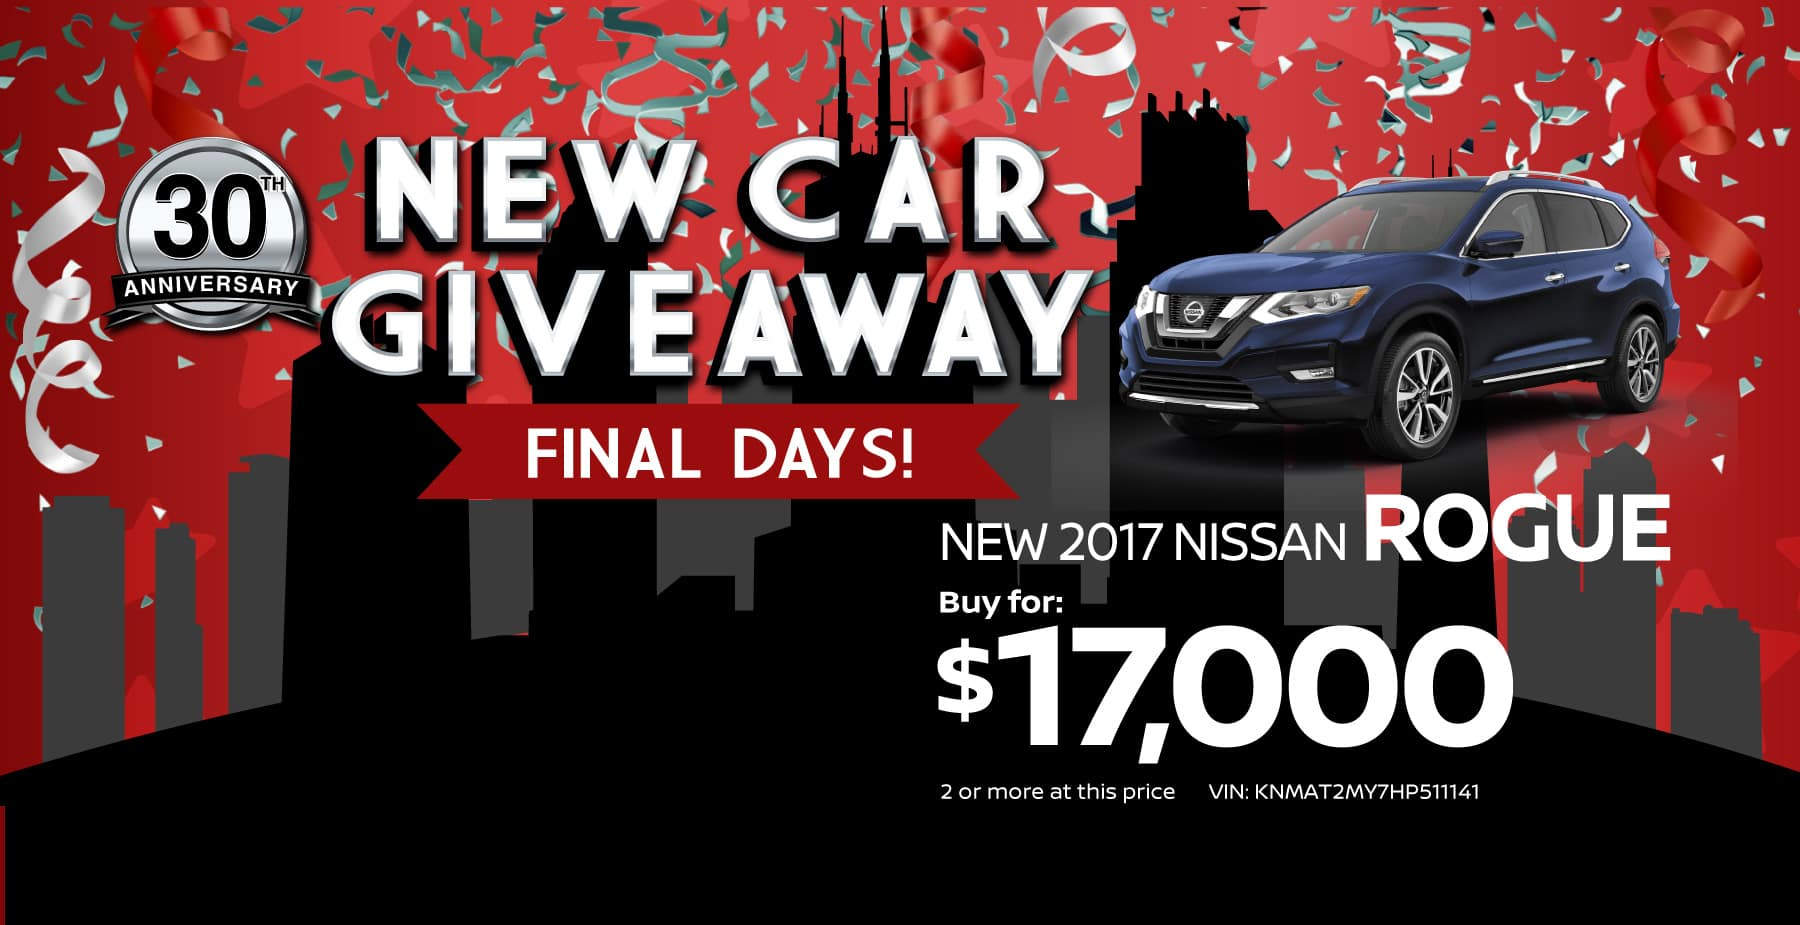 FInal Days of Our New Car Giveaway Sale at Star Nissan!